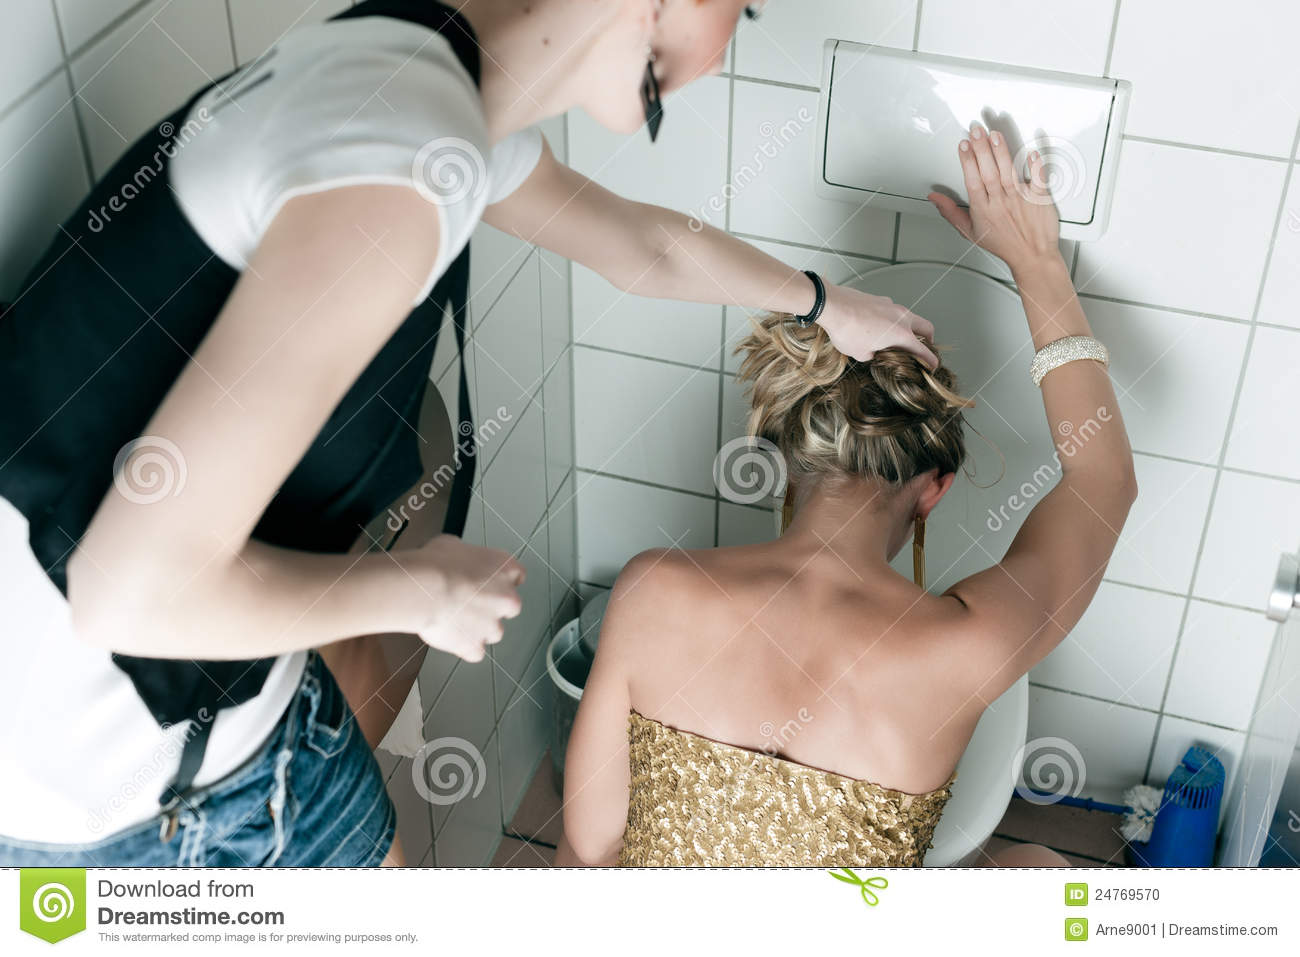 woman-throwing-up-toilet-24769570.jpg